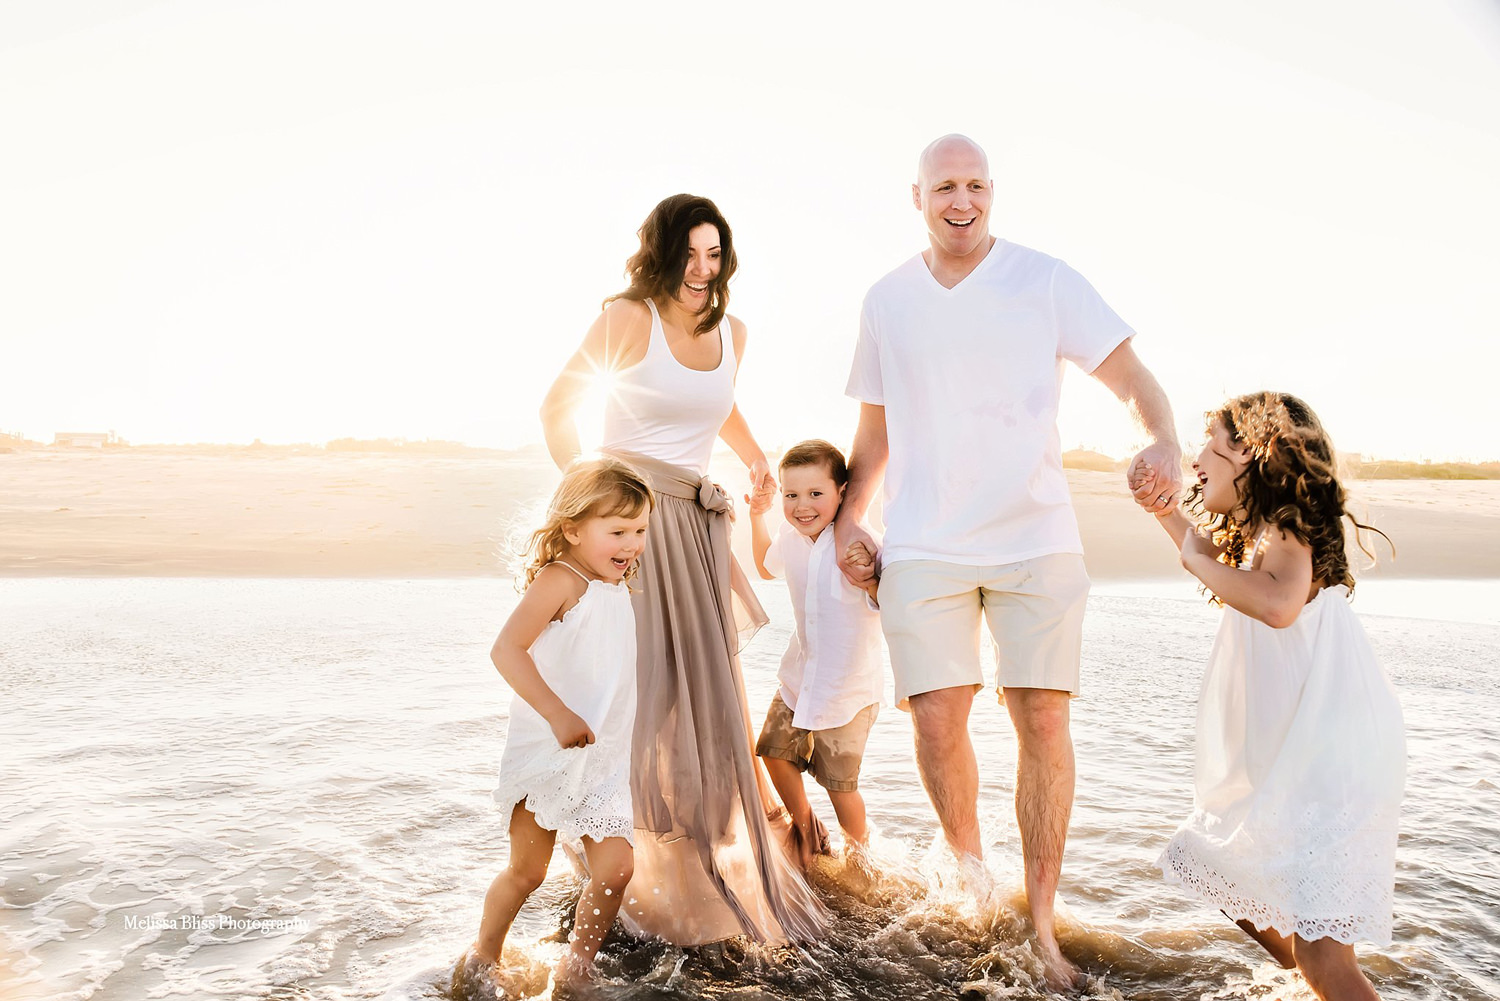 lifestyle-family-beach-pictures-candid-fun-melissa-bliss-photography-virginia-beach's-premier-beach-photographer.jpg